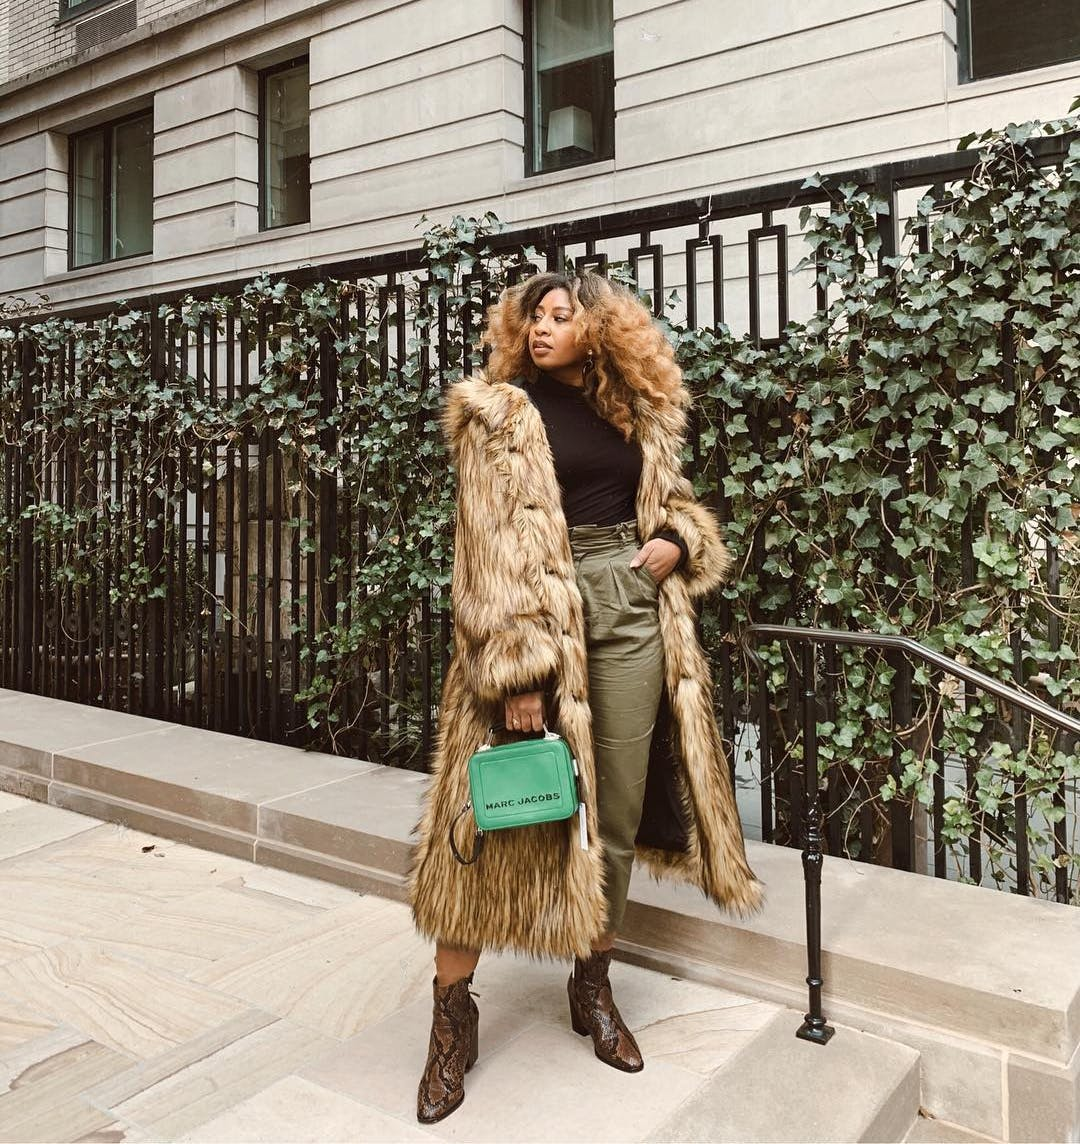 courtney danielle wearing a faux fur coat with a green bag